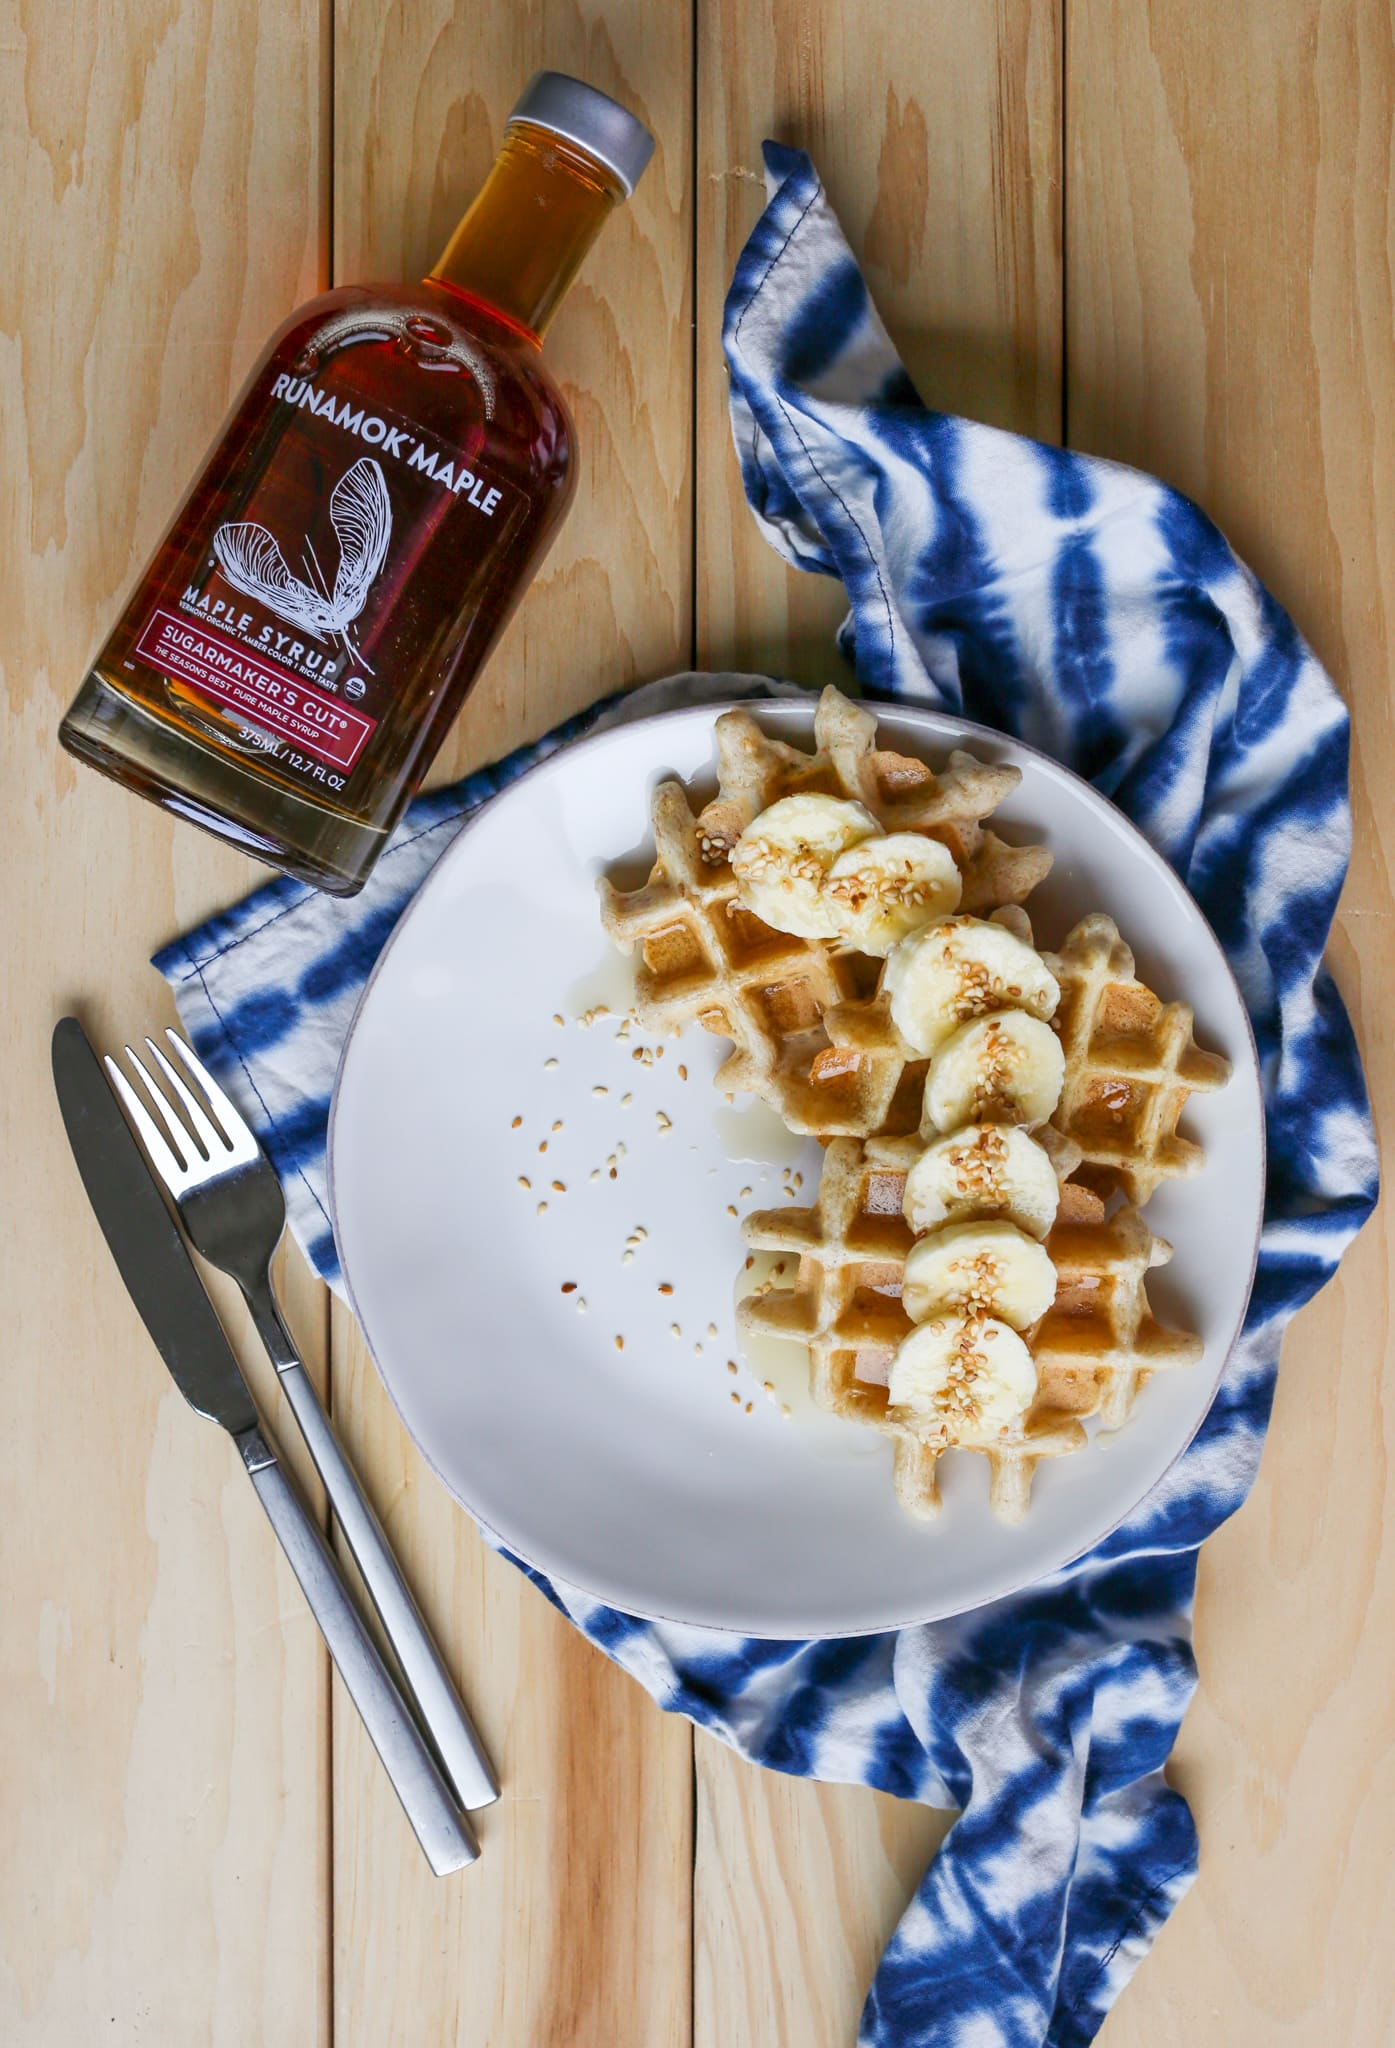 Sesame Tahini Waffles with Runamok Maple Syrup